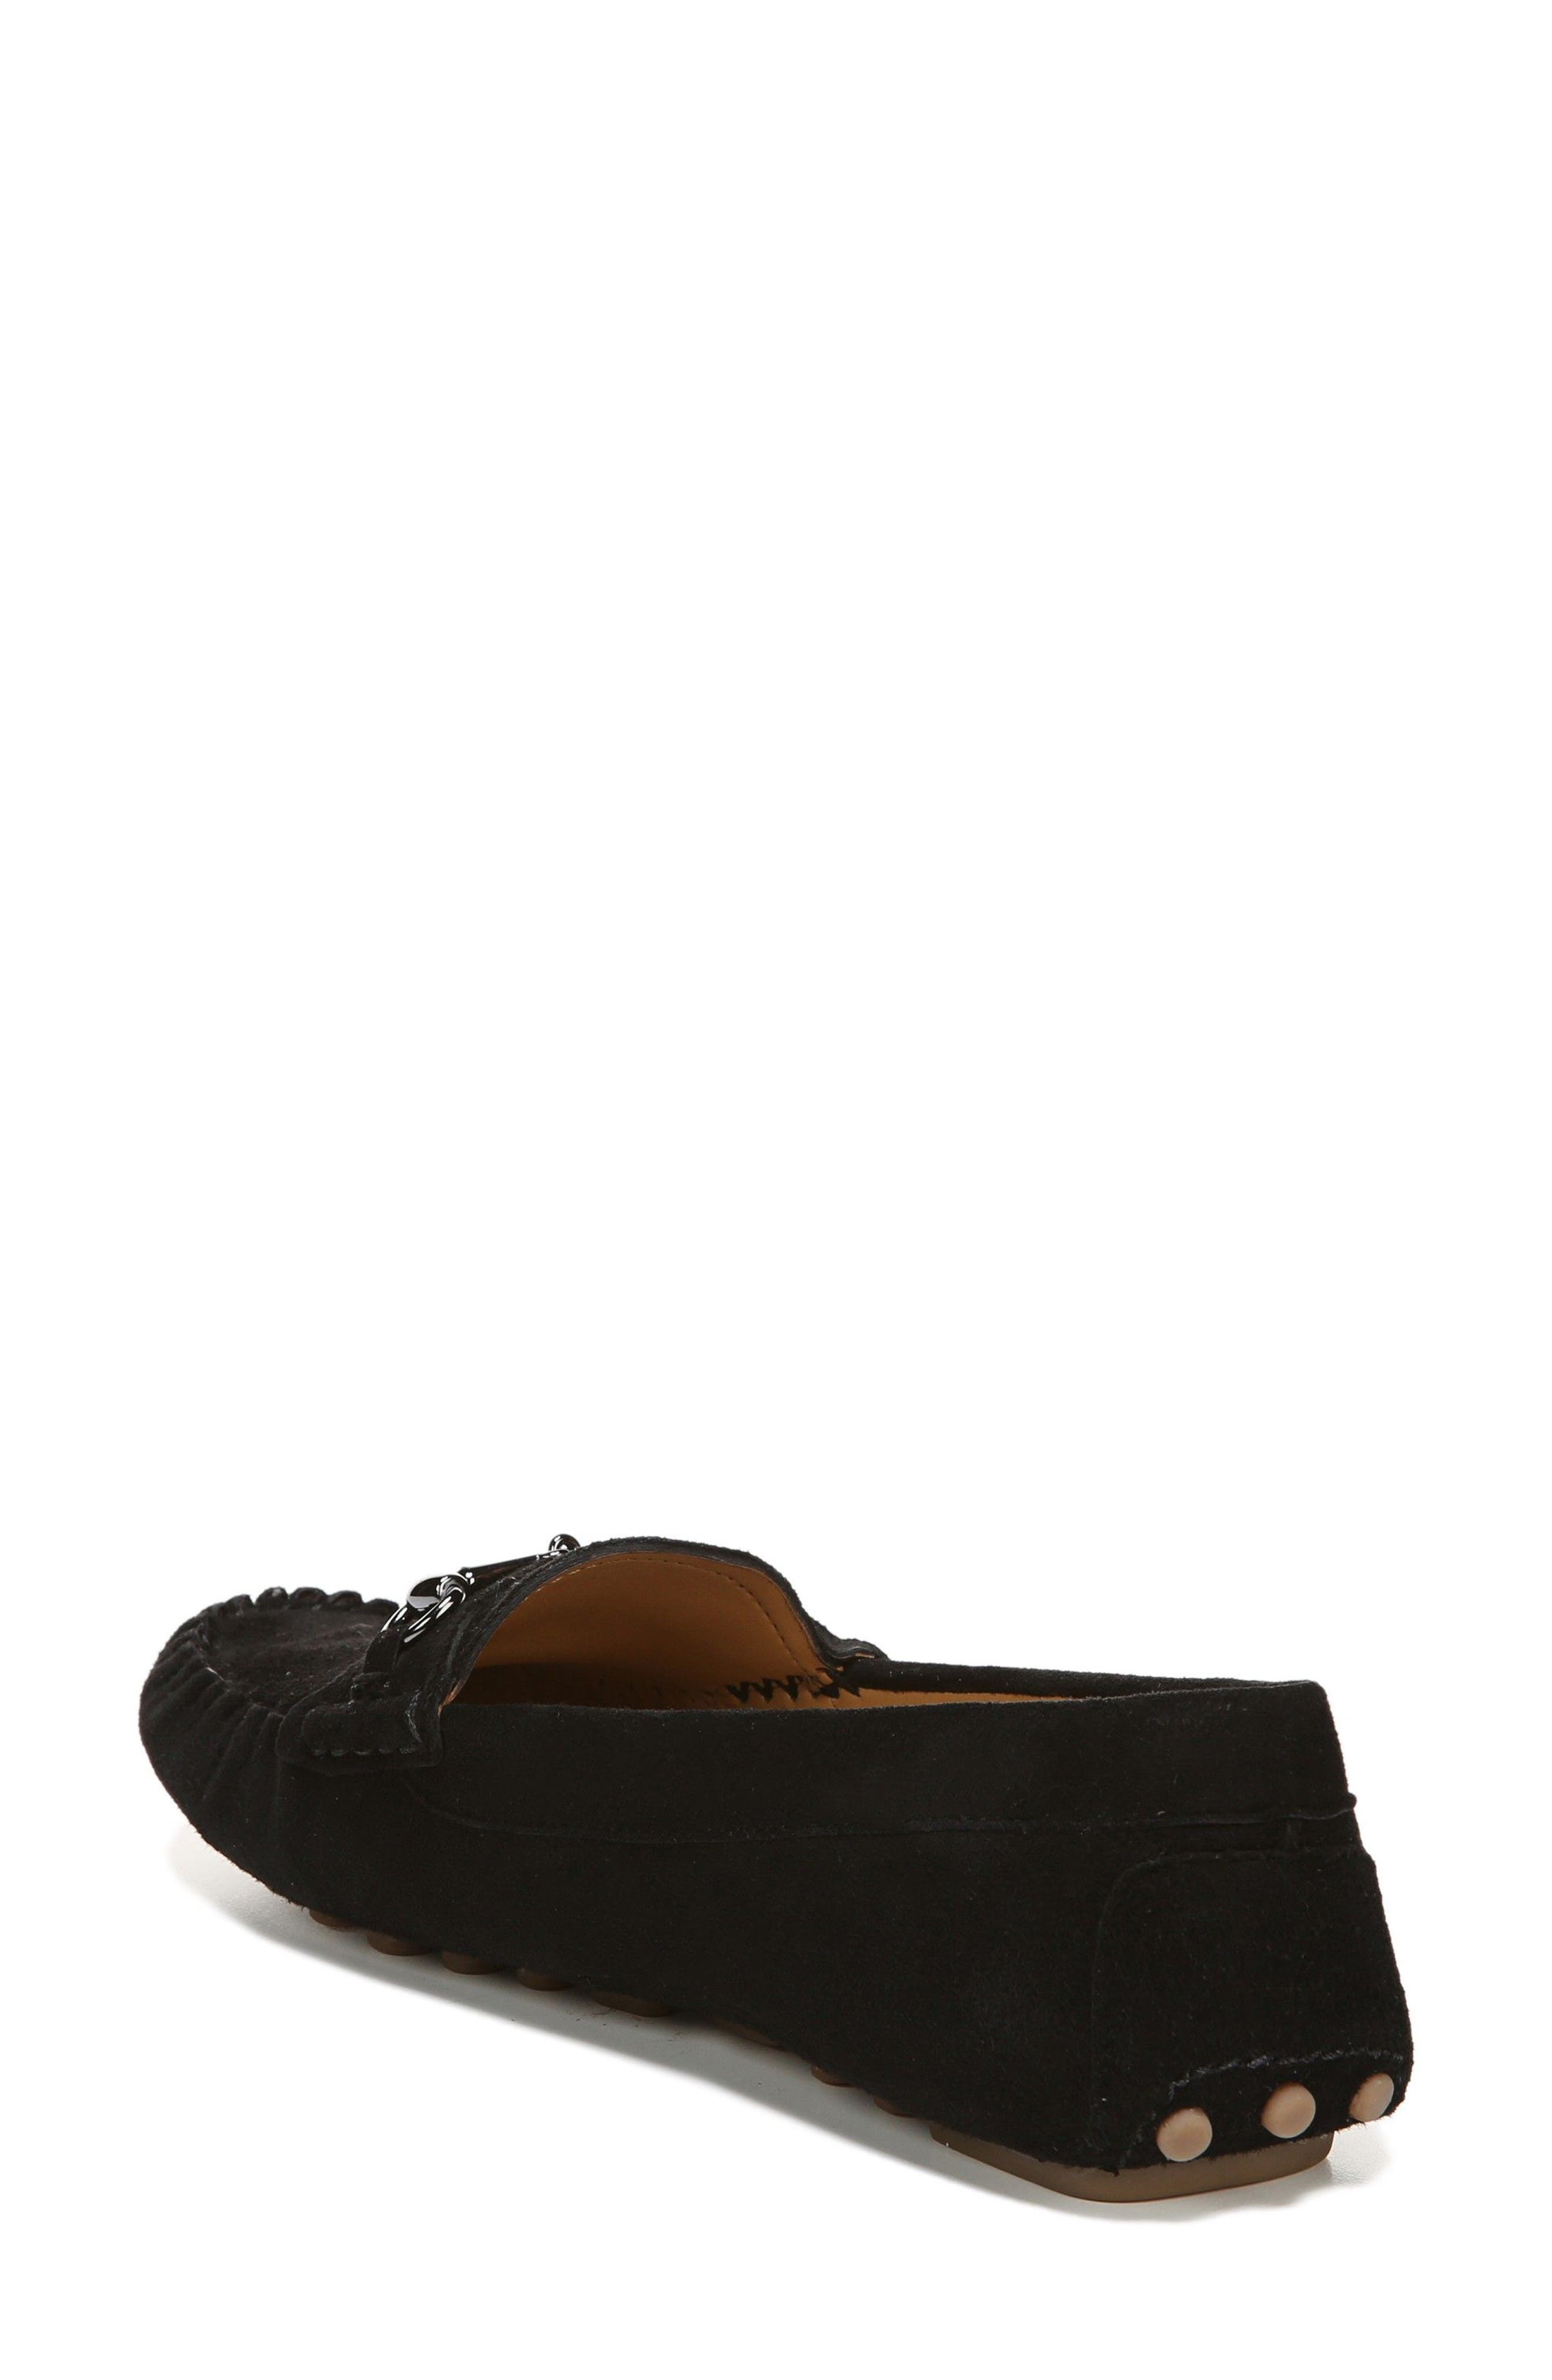 Galatea Loafer,                             Alternate thumbnail 2, color,                             001